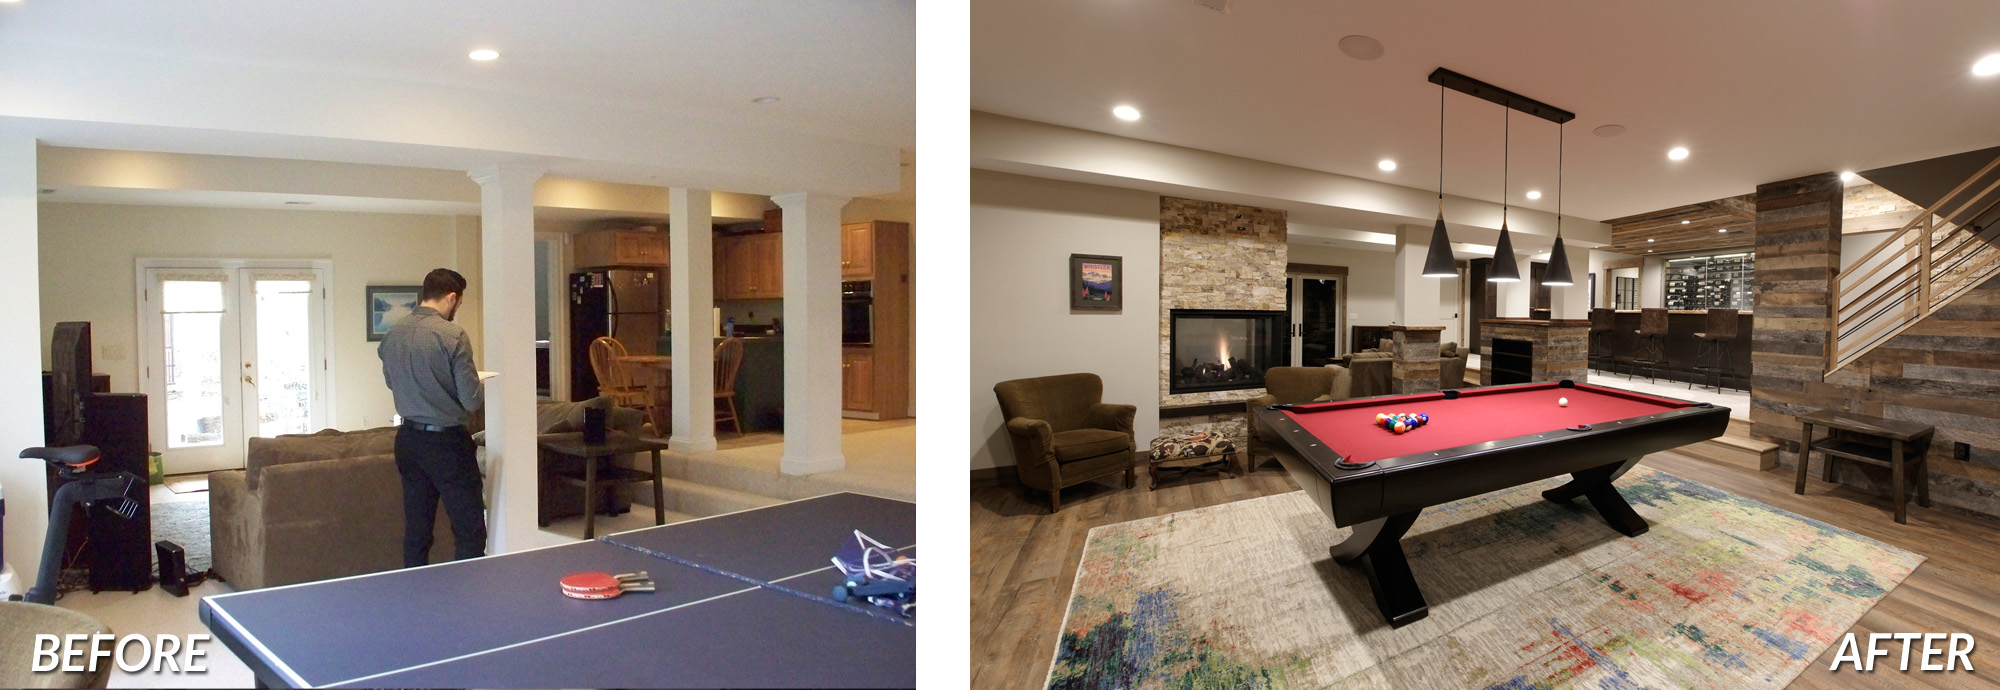 BOWA Design Design Build - McLean Basement Renovation Before & After 2000px